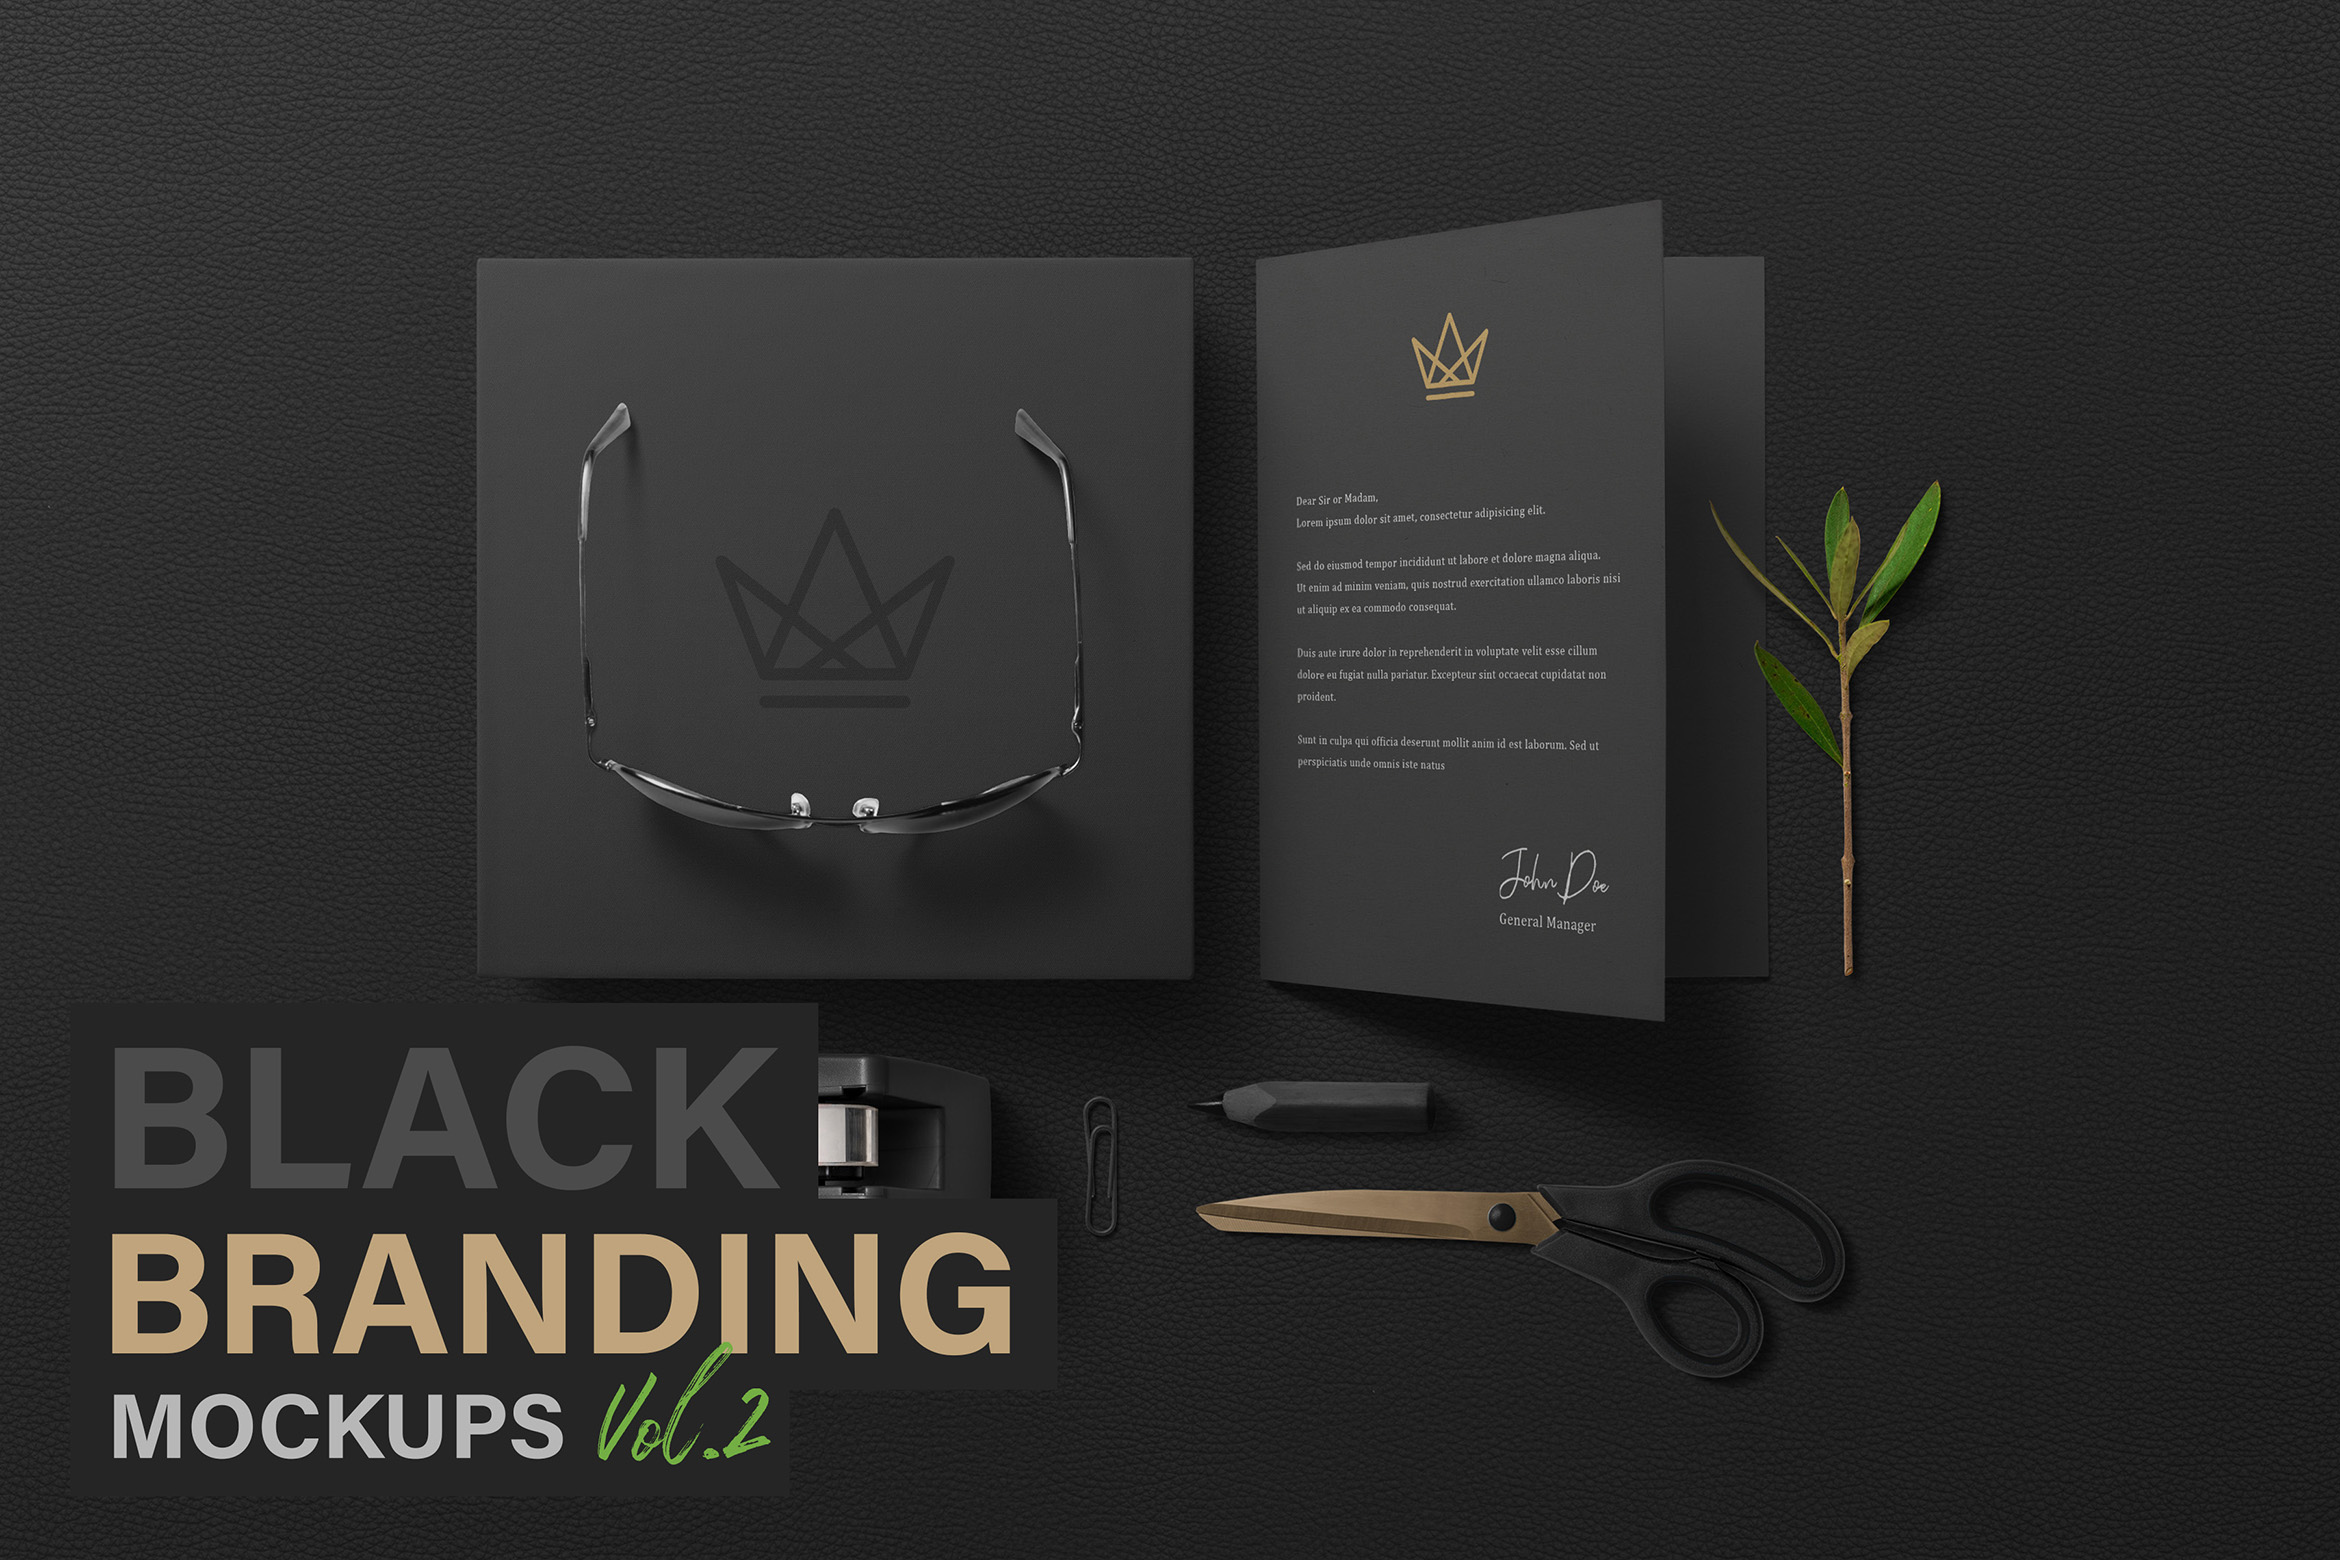 Black Branding Mockups Vol.2 example image 1